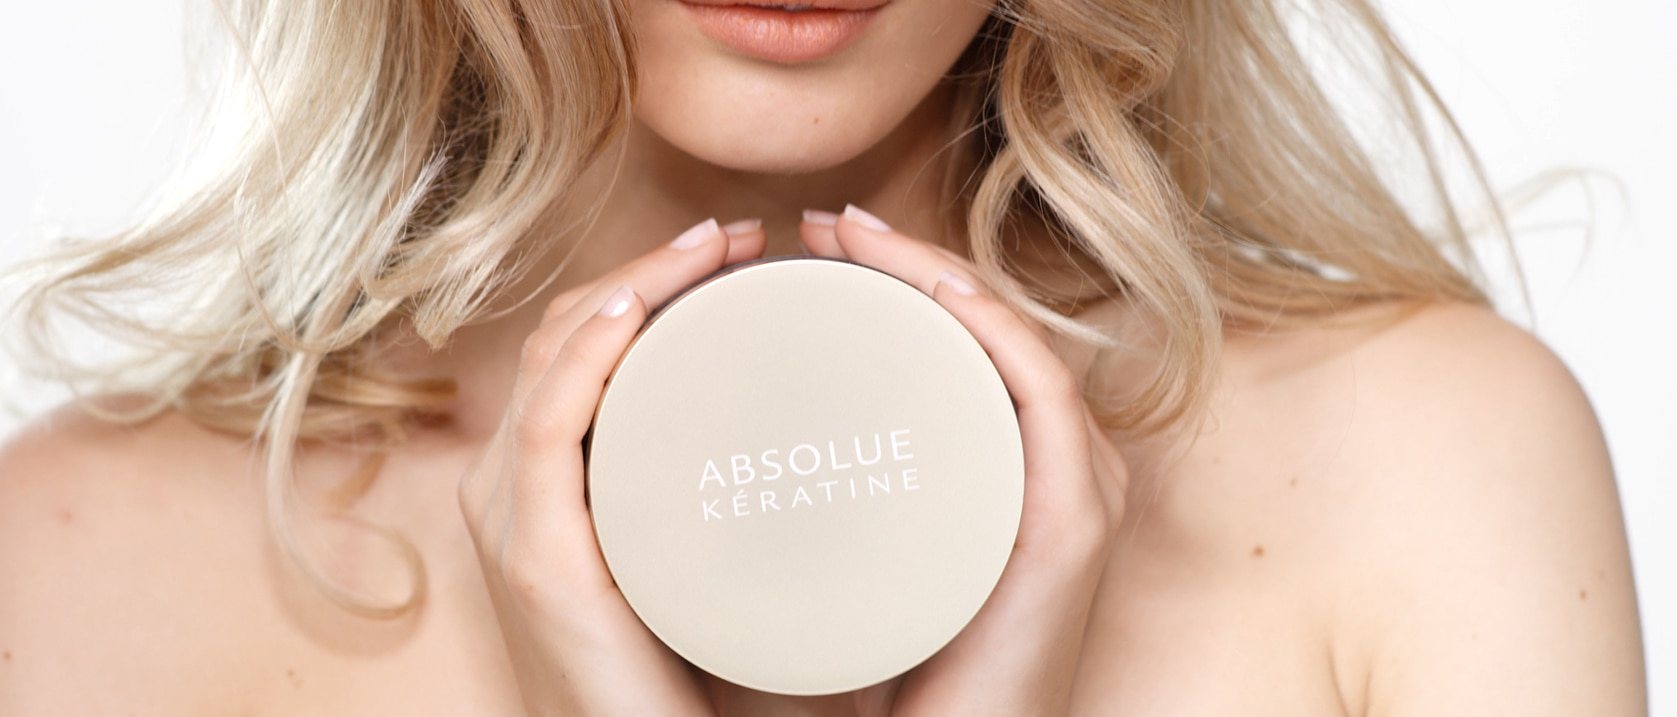 ABSOLUE KERATINE Ultimate renewal mask pot application video  | René Furterer